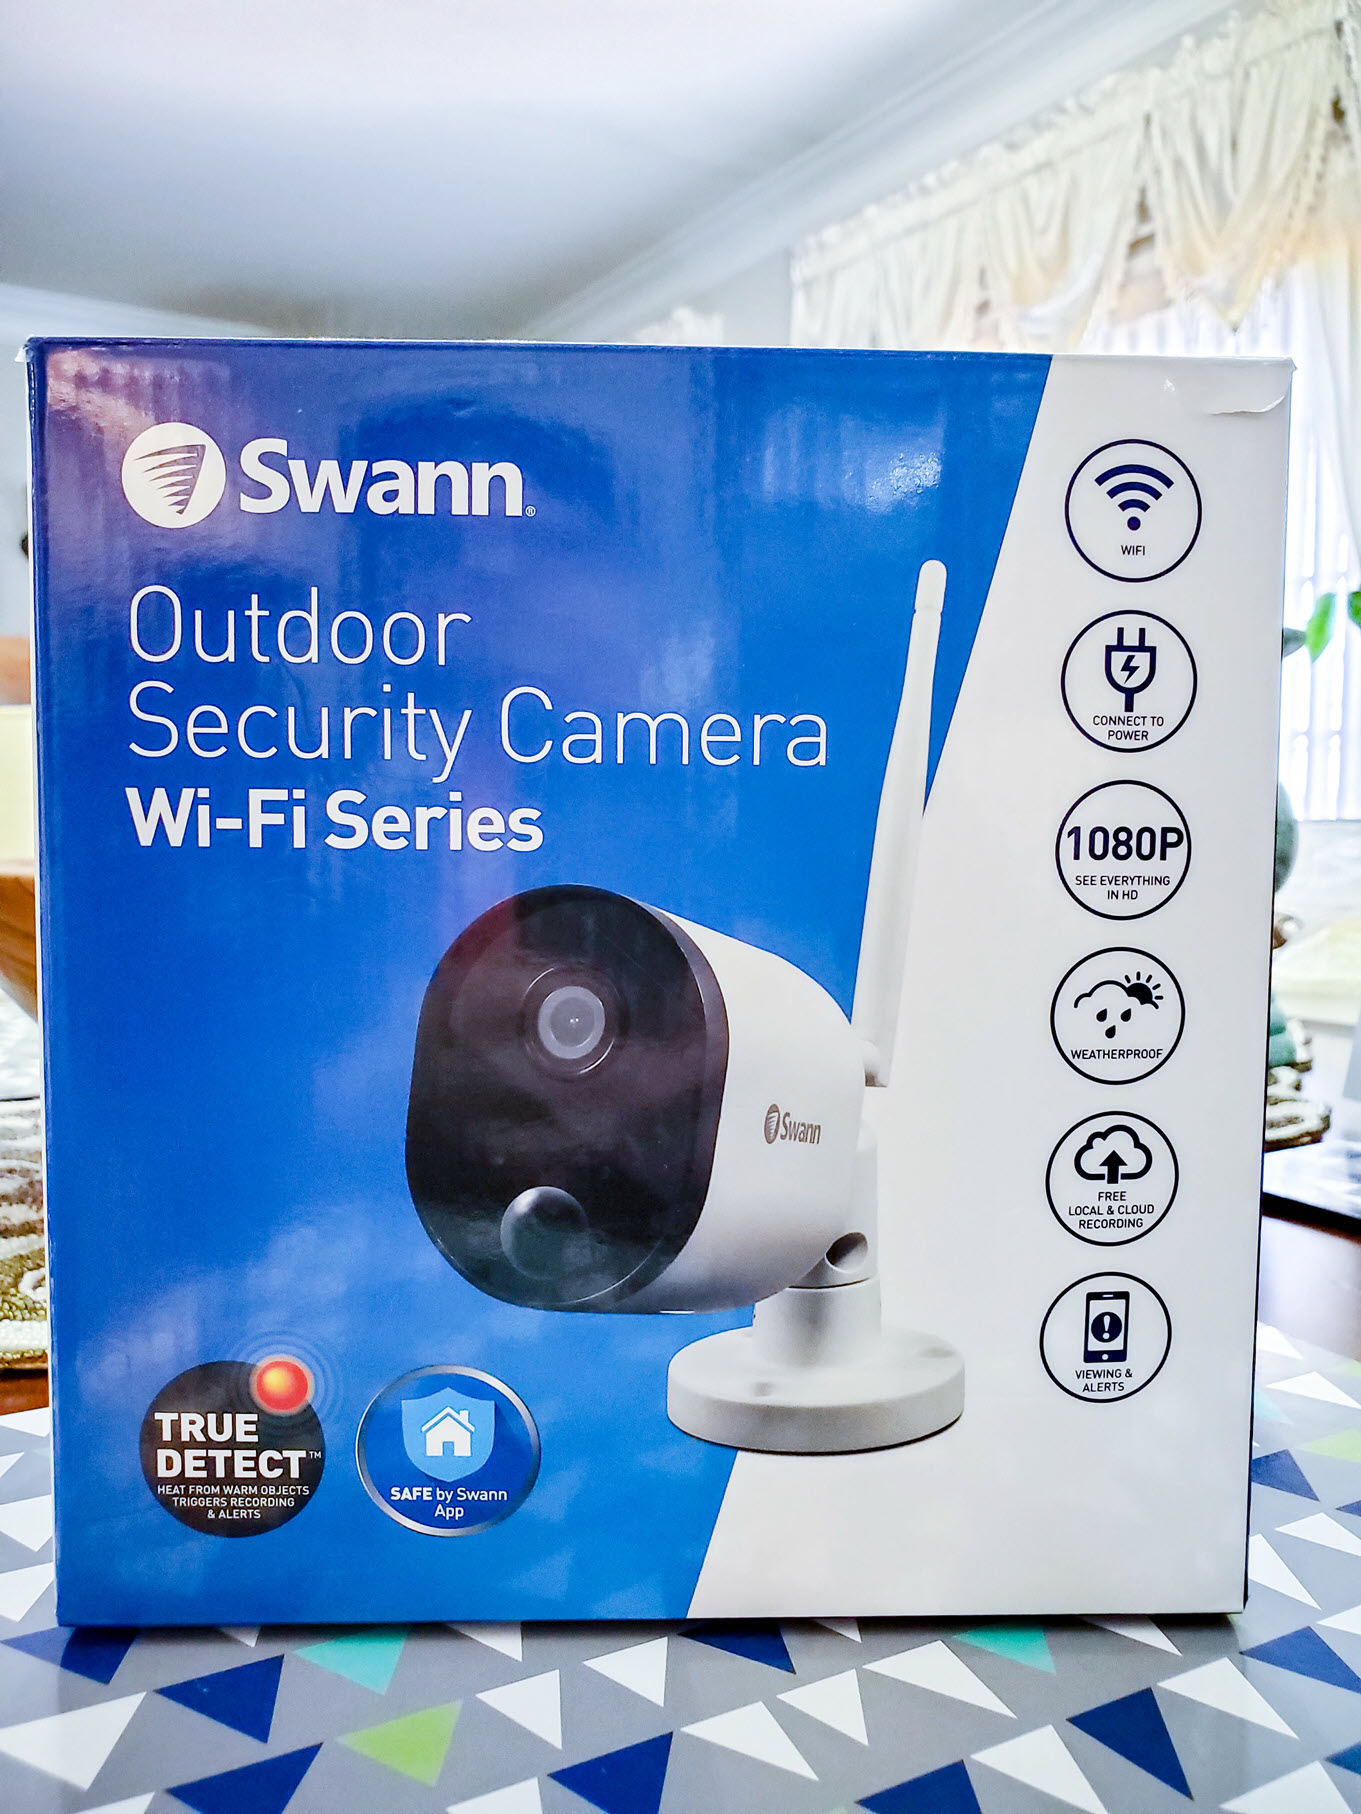 Swann 1080p Wi-Fi Outdoor Security Camera